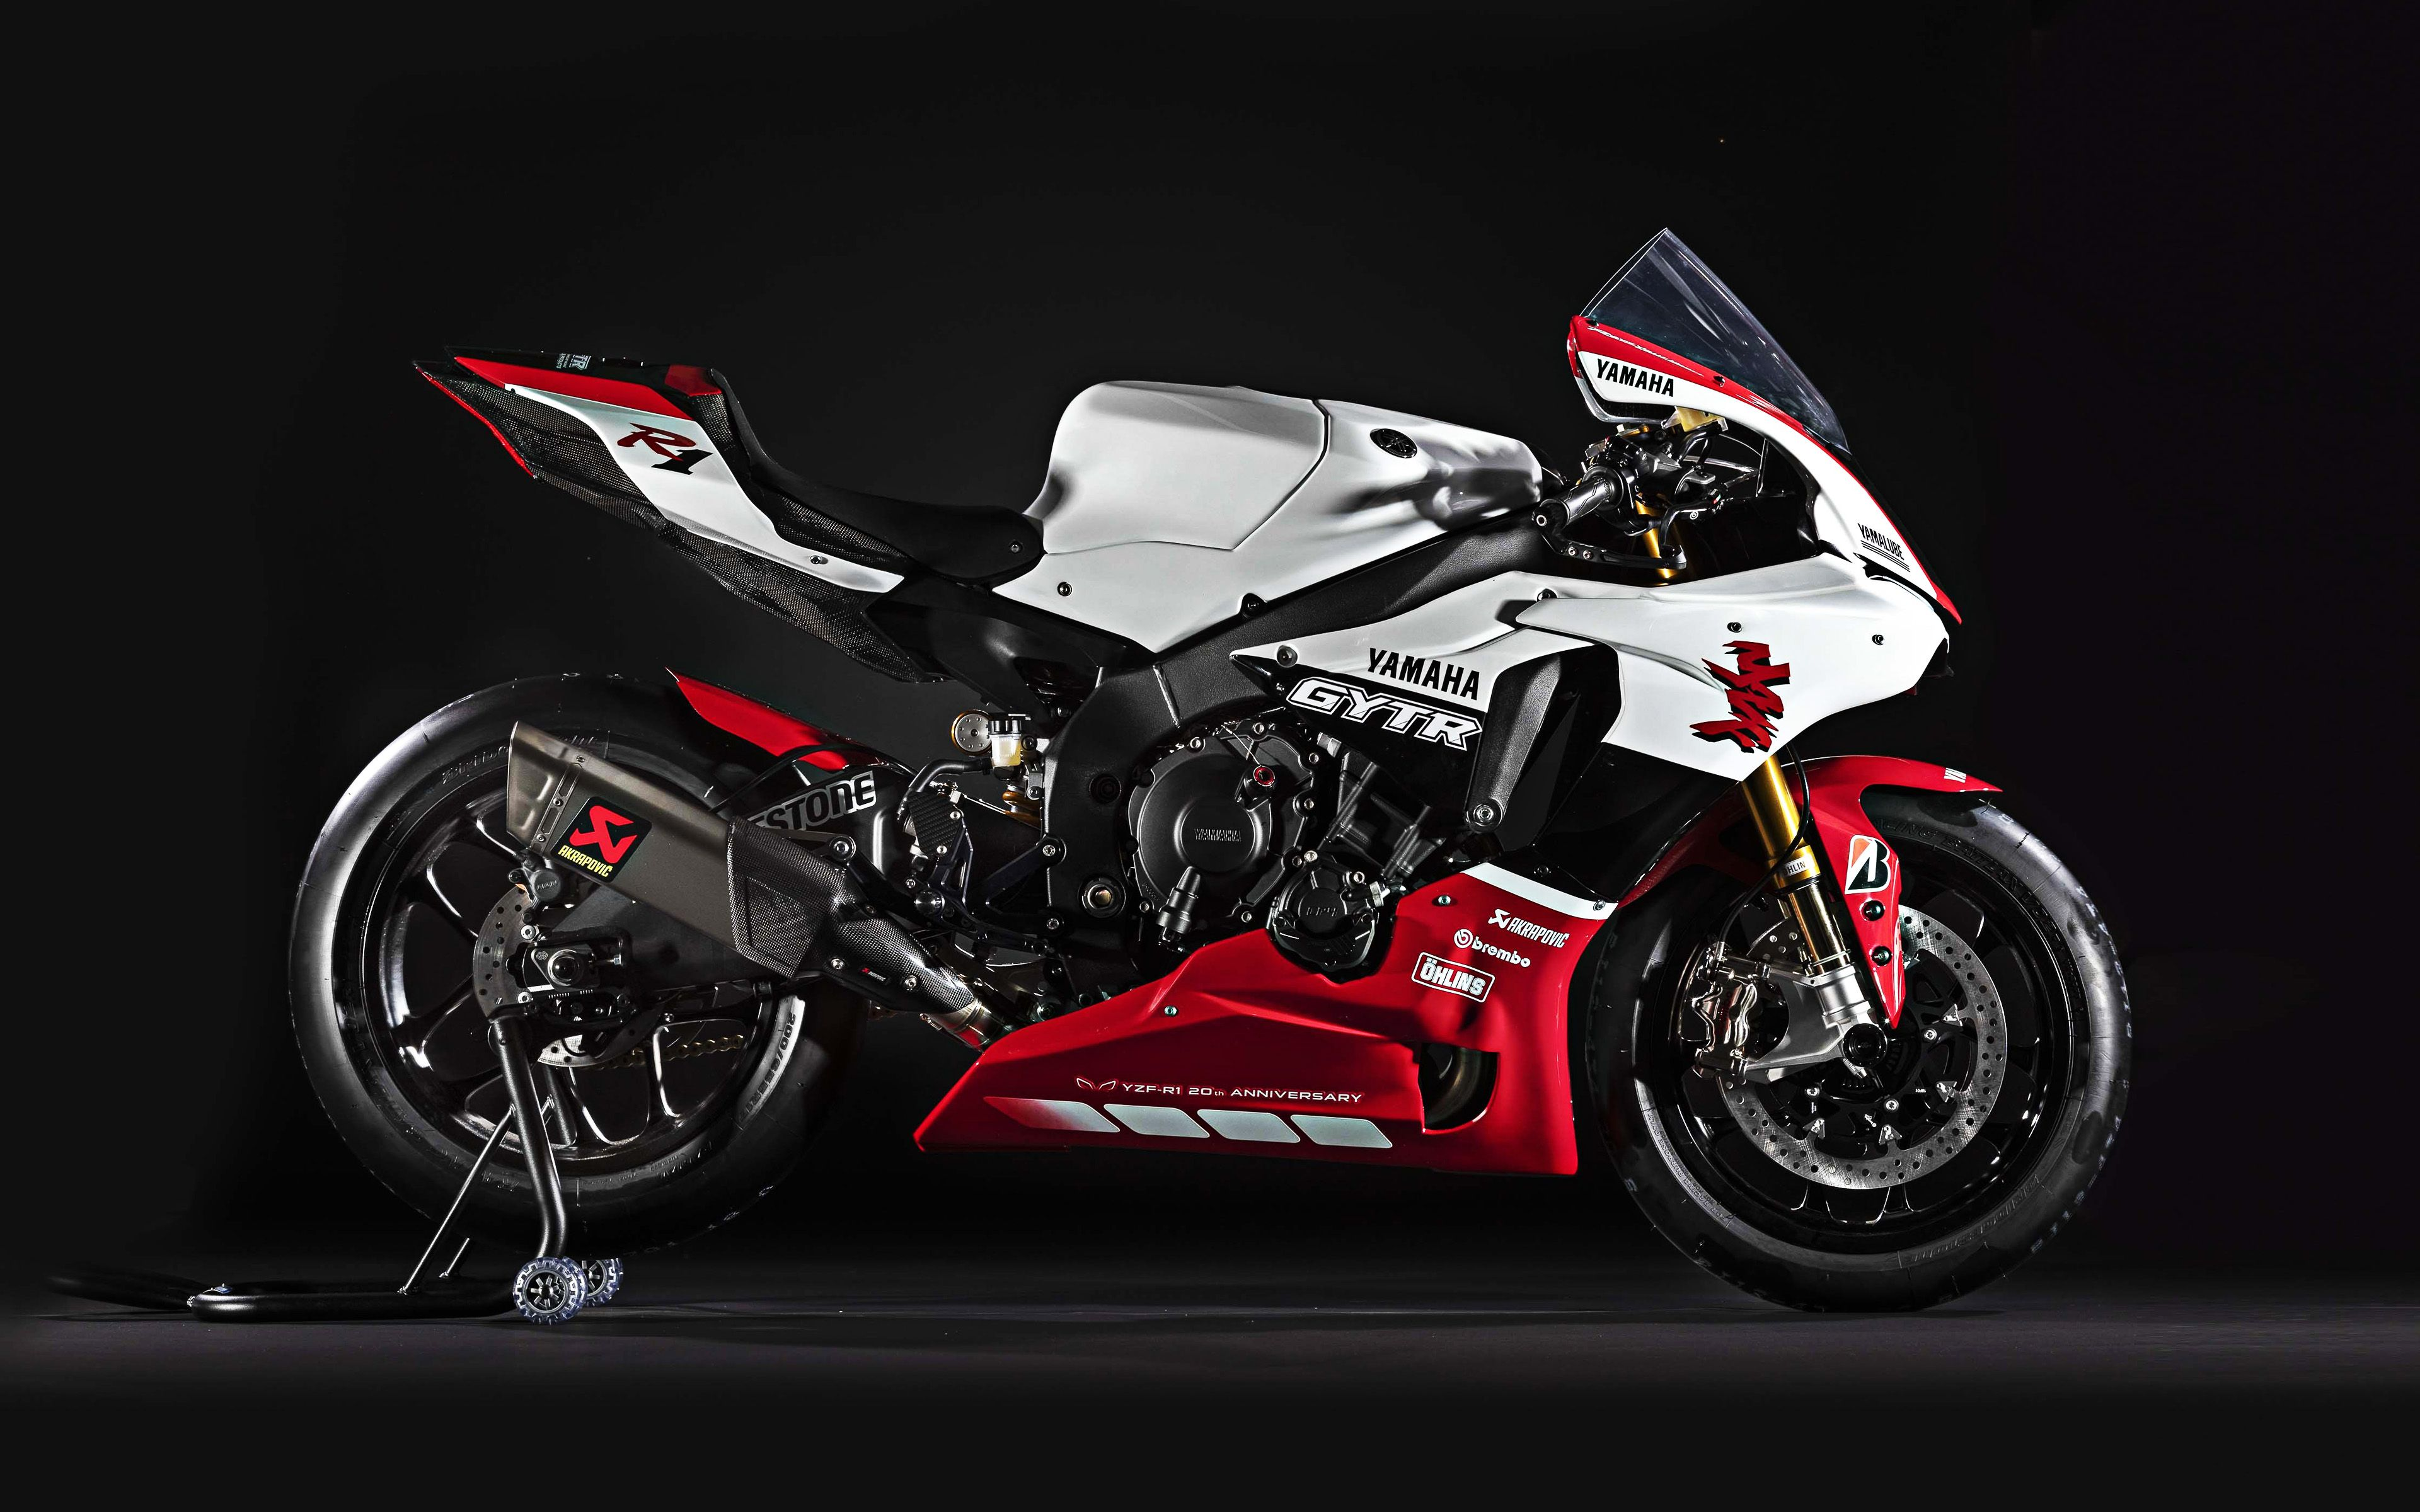 Pin By Draaven On Yamaha R1 R6 And Other Motorcycles Yamaha R1